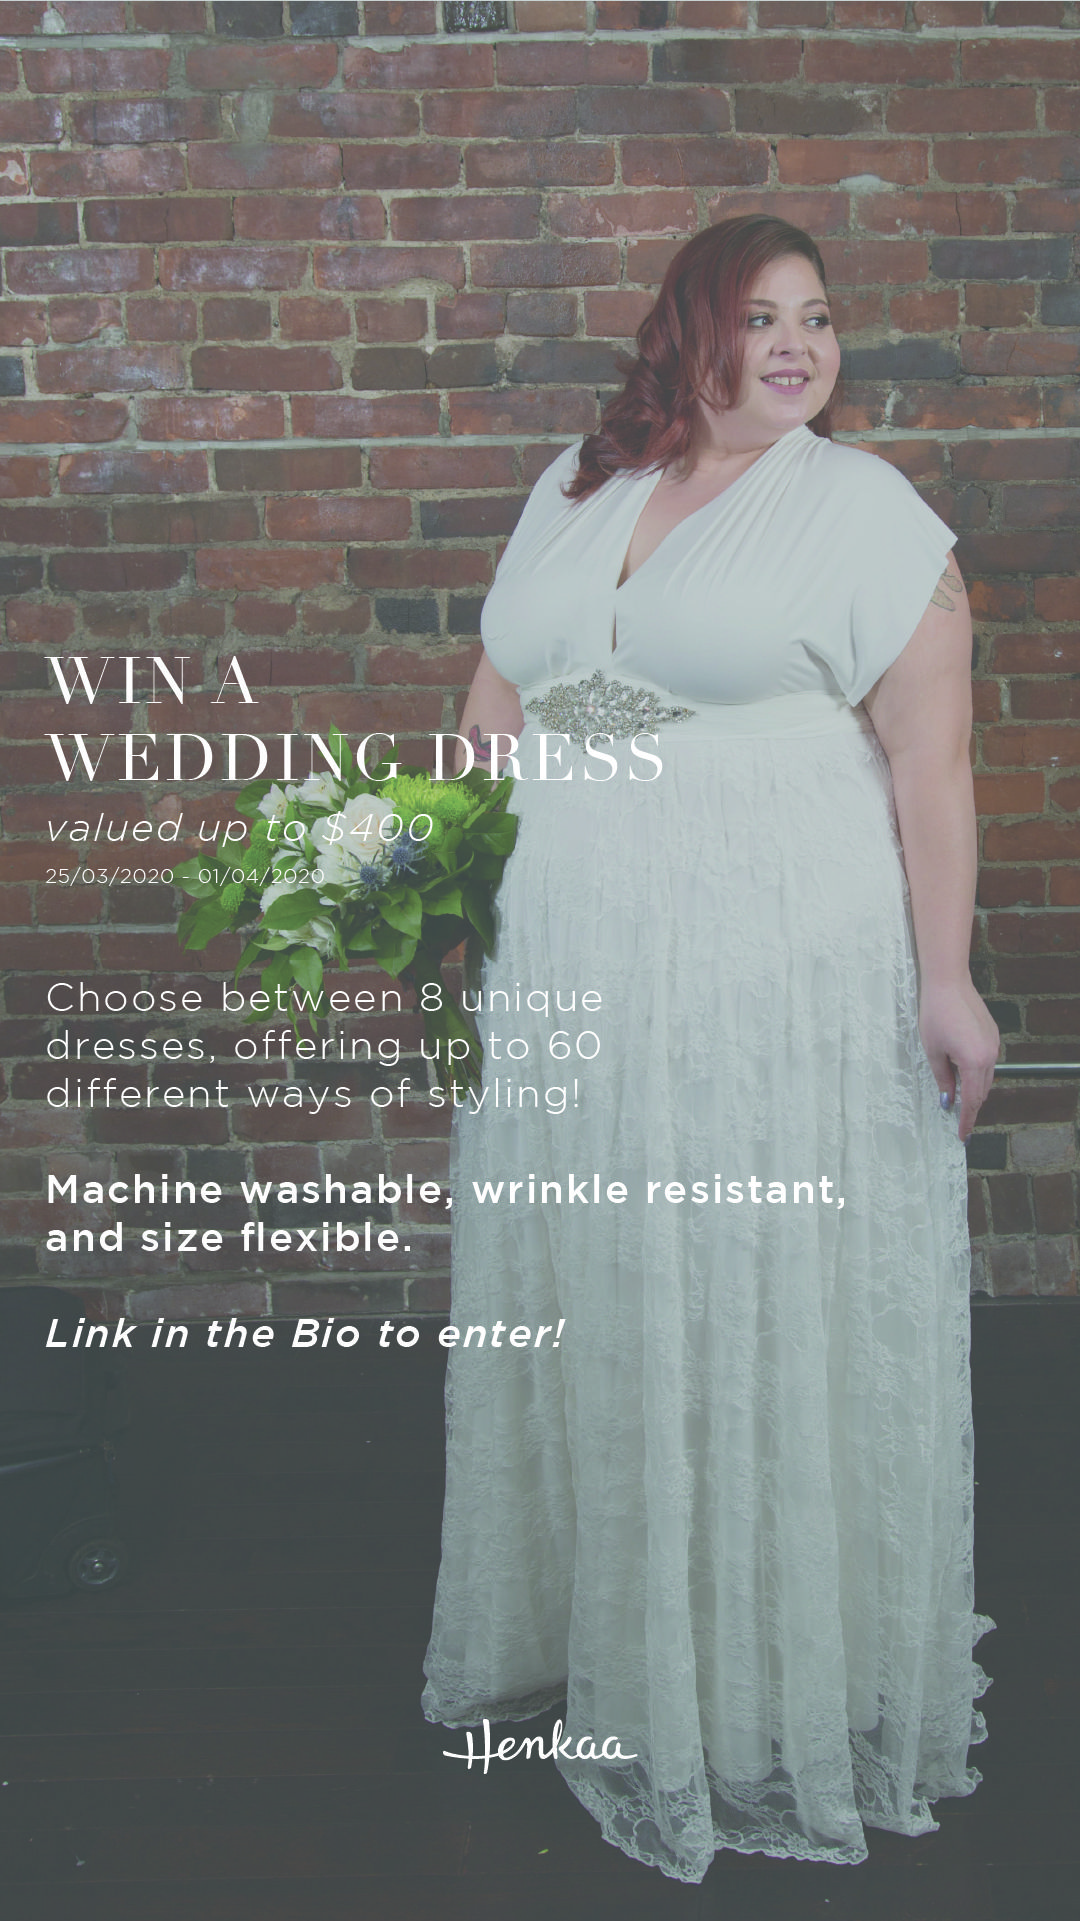 Win A Wedding Dress In 2020 Win A Wedding Convertible Wedding Dresses Unique Dresses